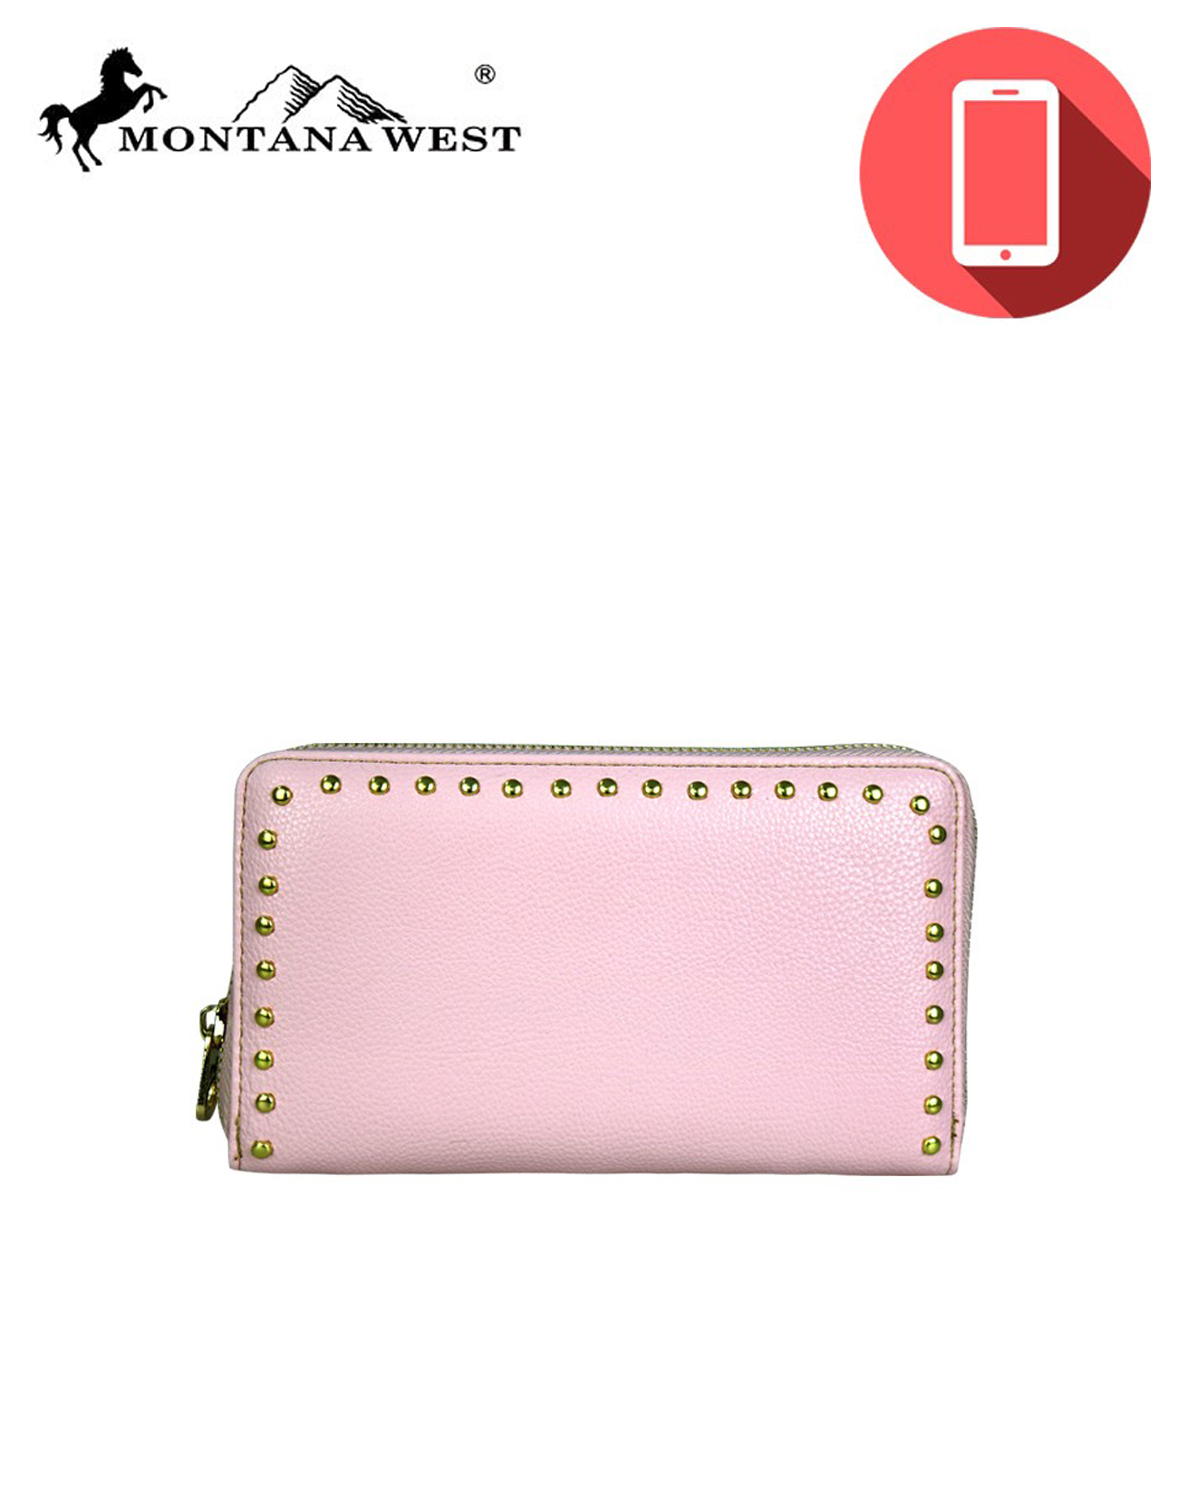 PW03W003(PK)-MW-wholesale-montana-west-wallet-phone-charging-studs-rhinestones-solid-color-rechargeable-cord(0).jpg